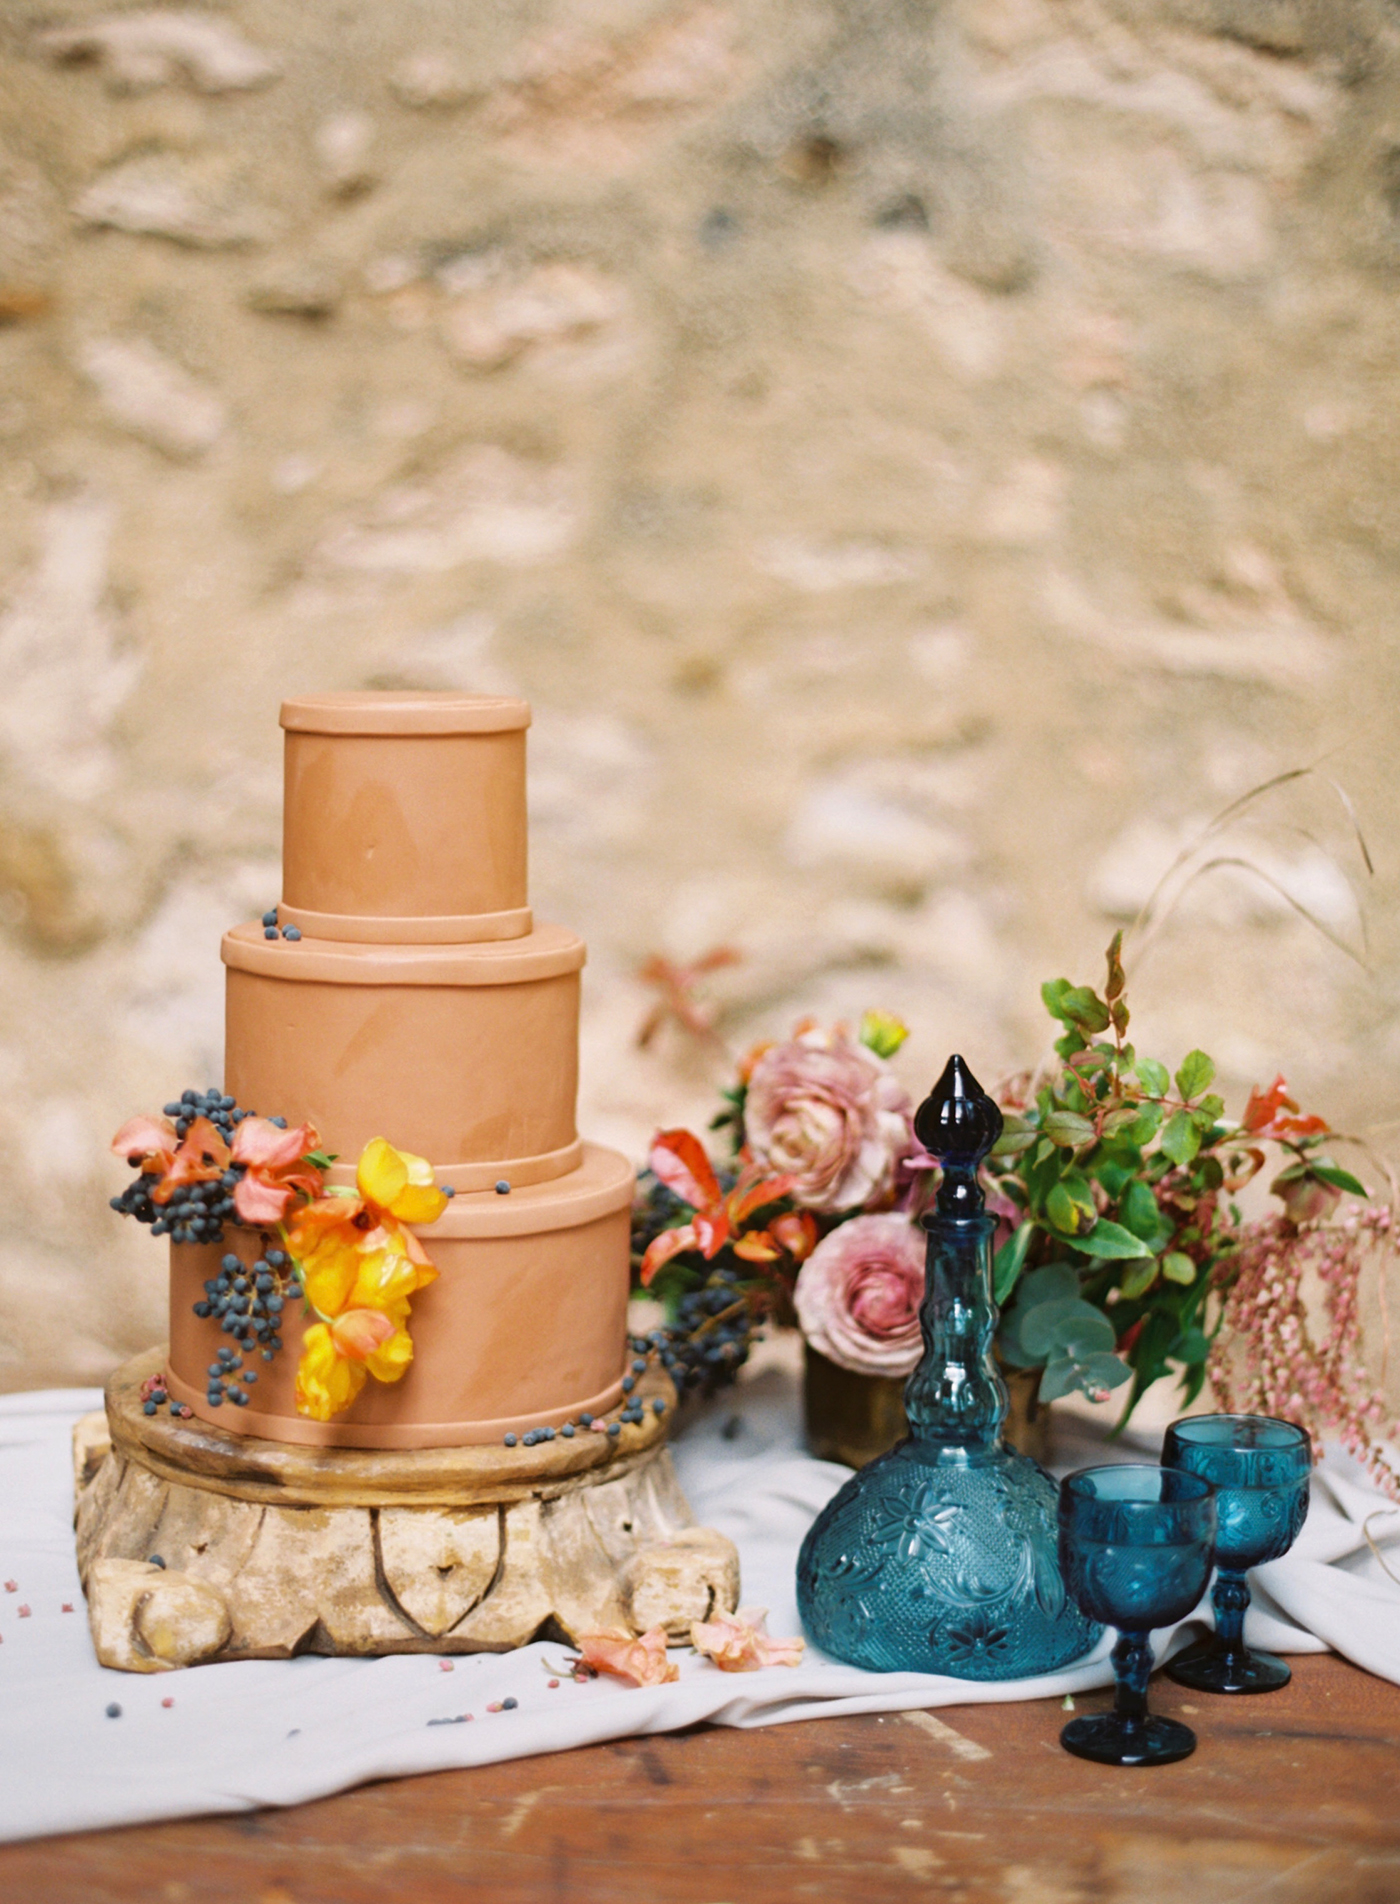 terra cotta decor cake with vases and flowers